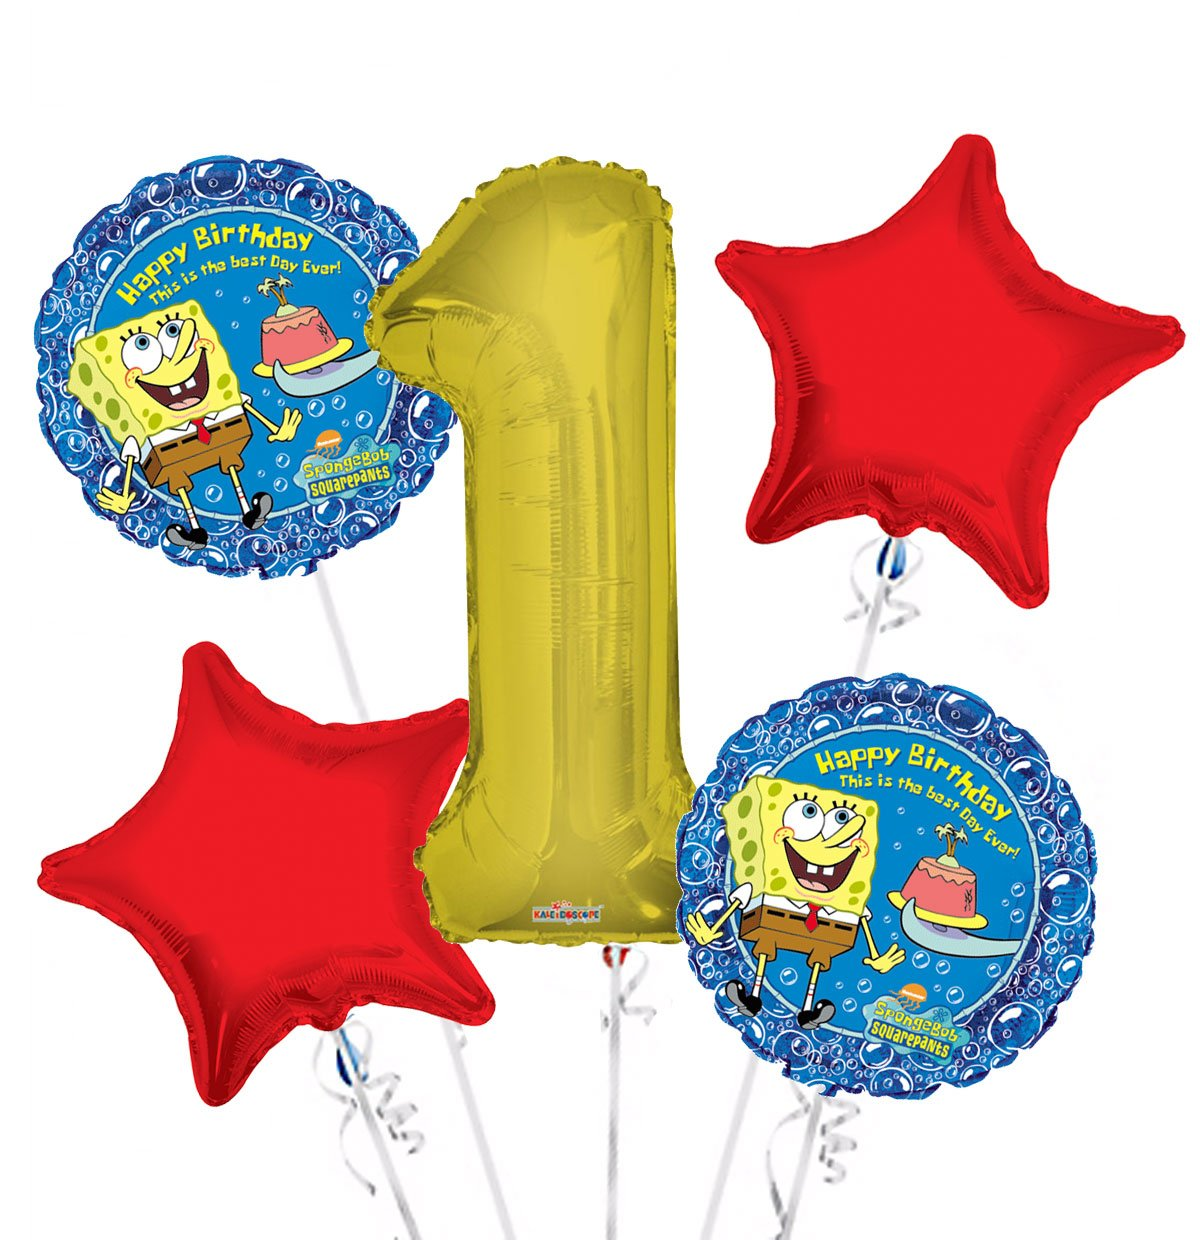 Sponge Bob Balloon Bouquet 1st Birthday 5 pcs - Party Supplies, 1 Giant Number 1 Balloon, 34in By Viva Party